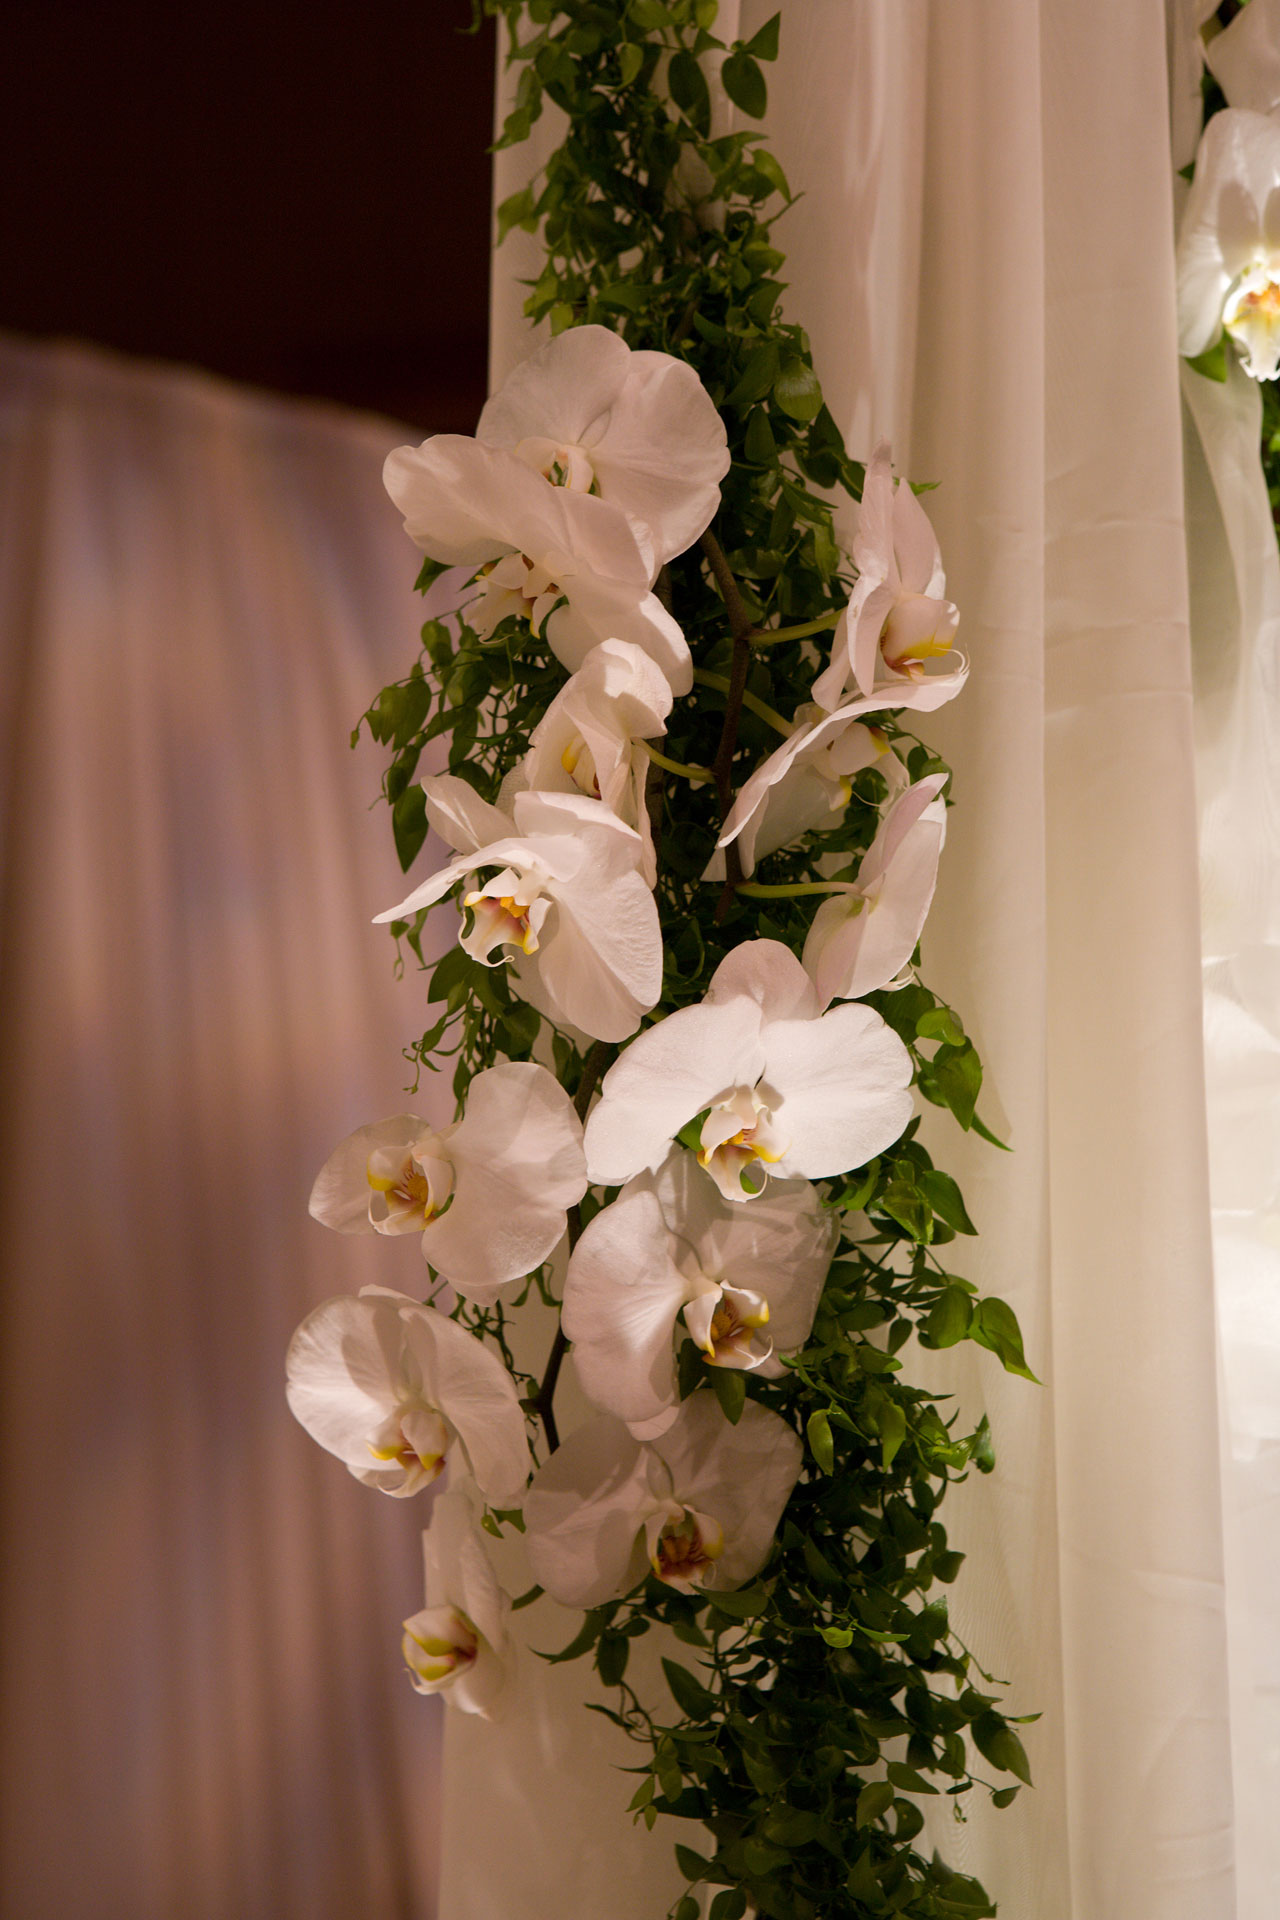 Elegant Effects in Floral Design - Chuppah NYC